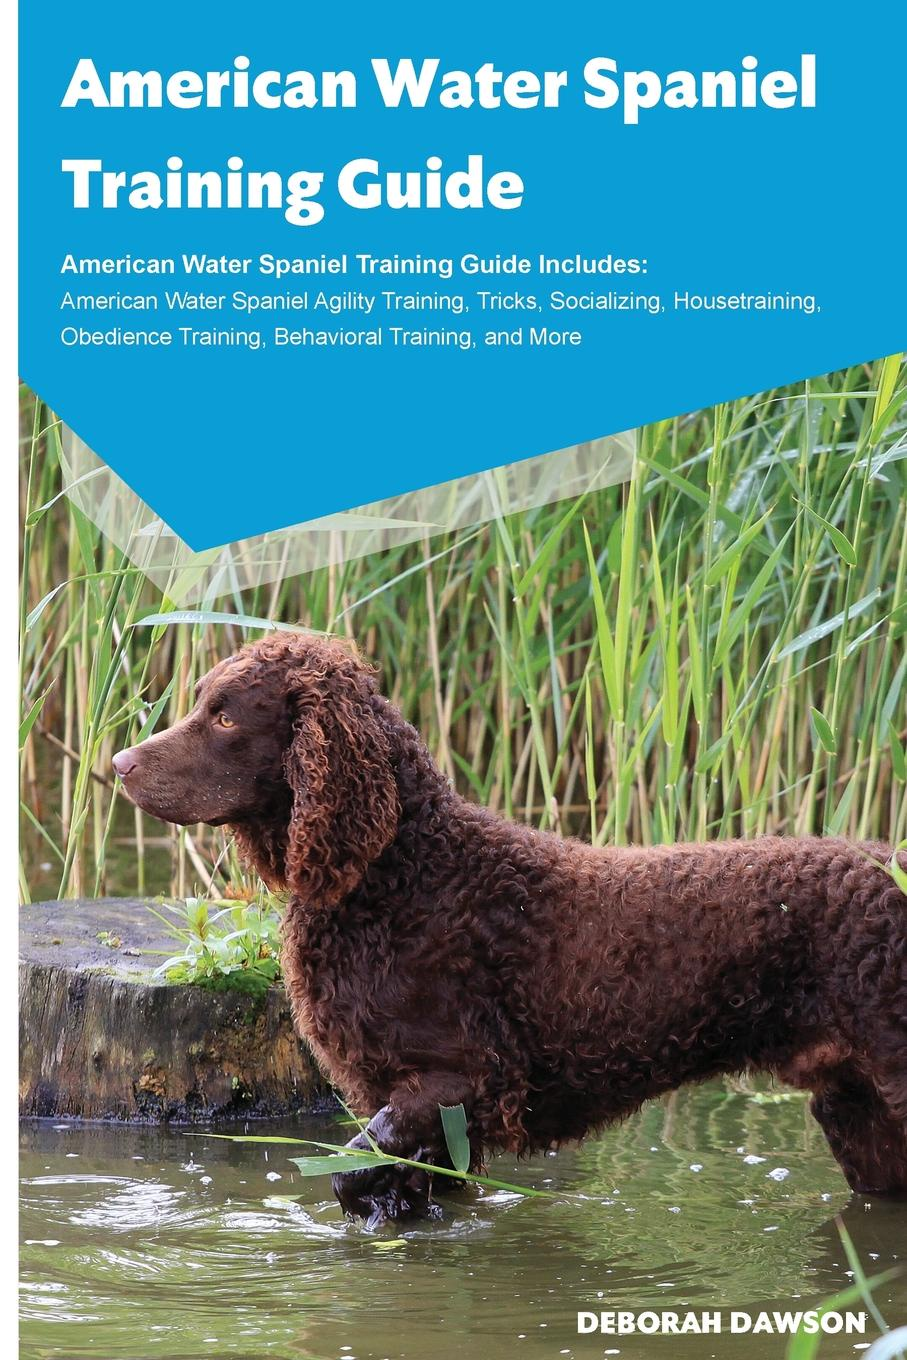 Deborah Dawson American Water Spaniel Training Guide American Water Spaniel Training Guide Includes. American Water Spaniel Agility Training, Tricks, Socializing, Housetraining, Obedience Training, Behavioral Training, and More цены